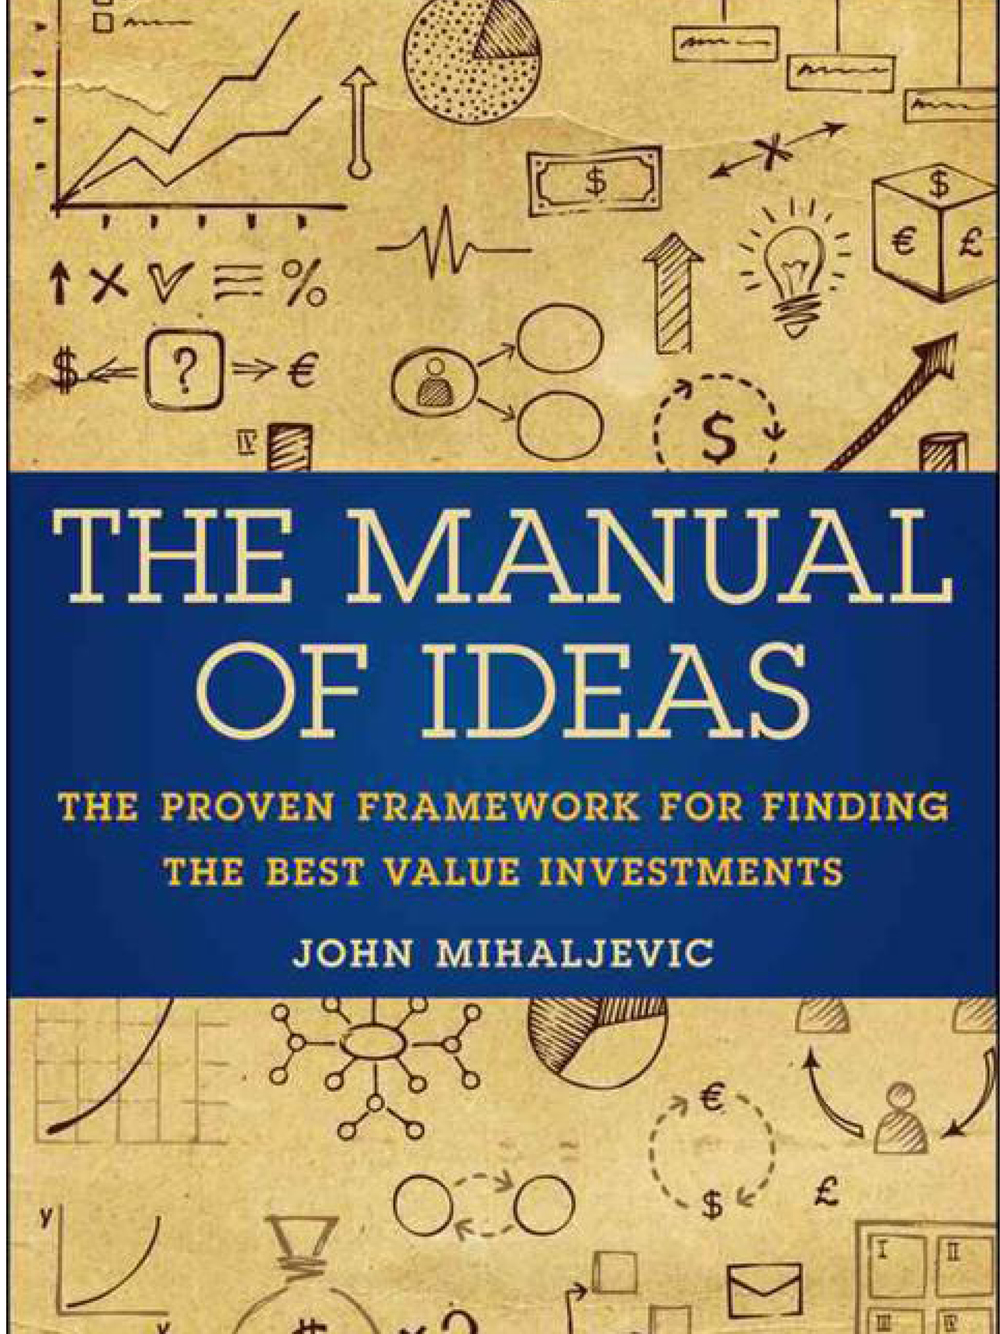 The Manual of Ideas: The Proven Framework for Finding the Best Value Investments John Mihaljevic 2013